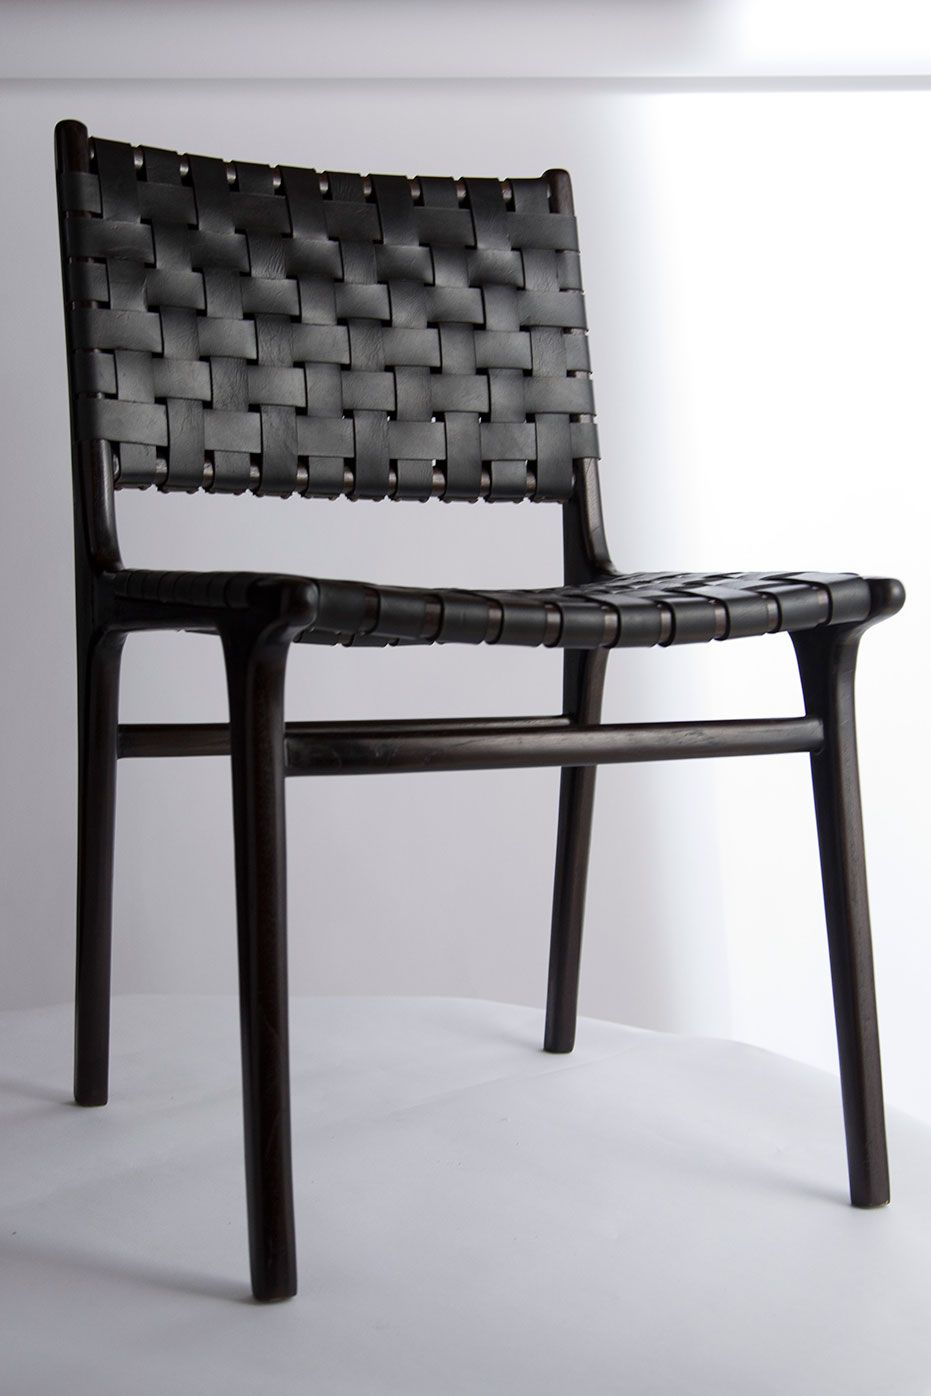 Black Leather Dining Chairs Modern Chair Series Double Backed Leather Woven Chair M0001 In